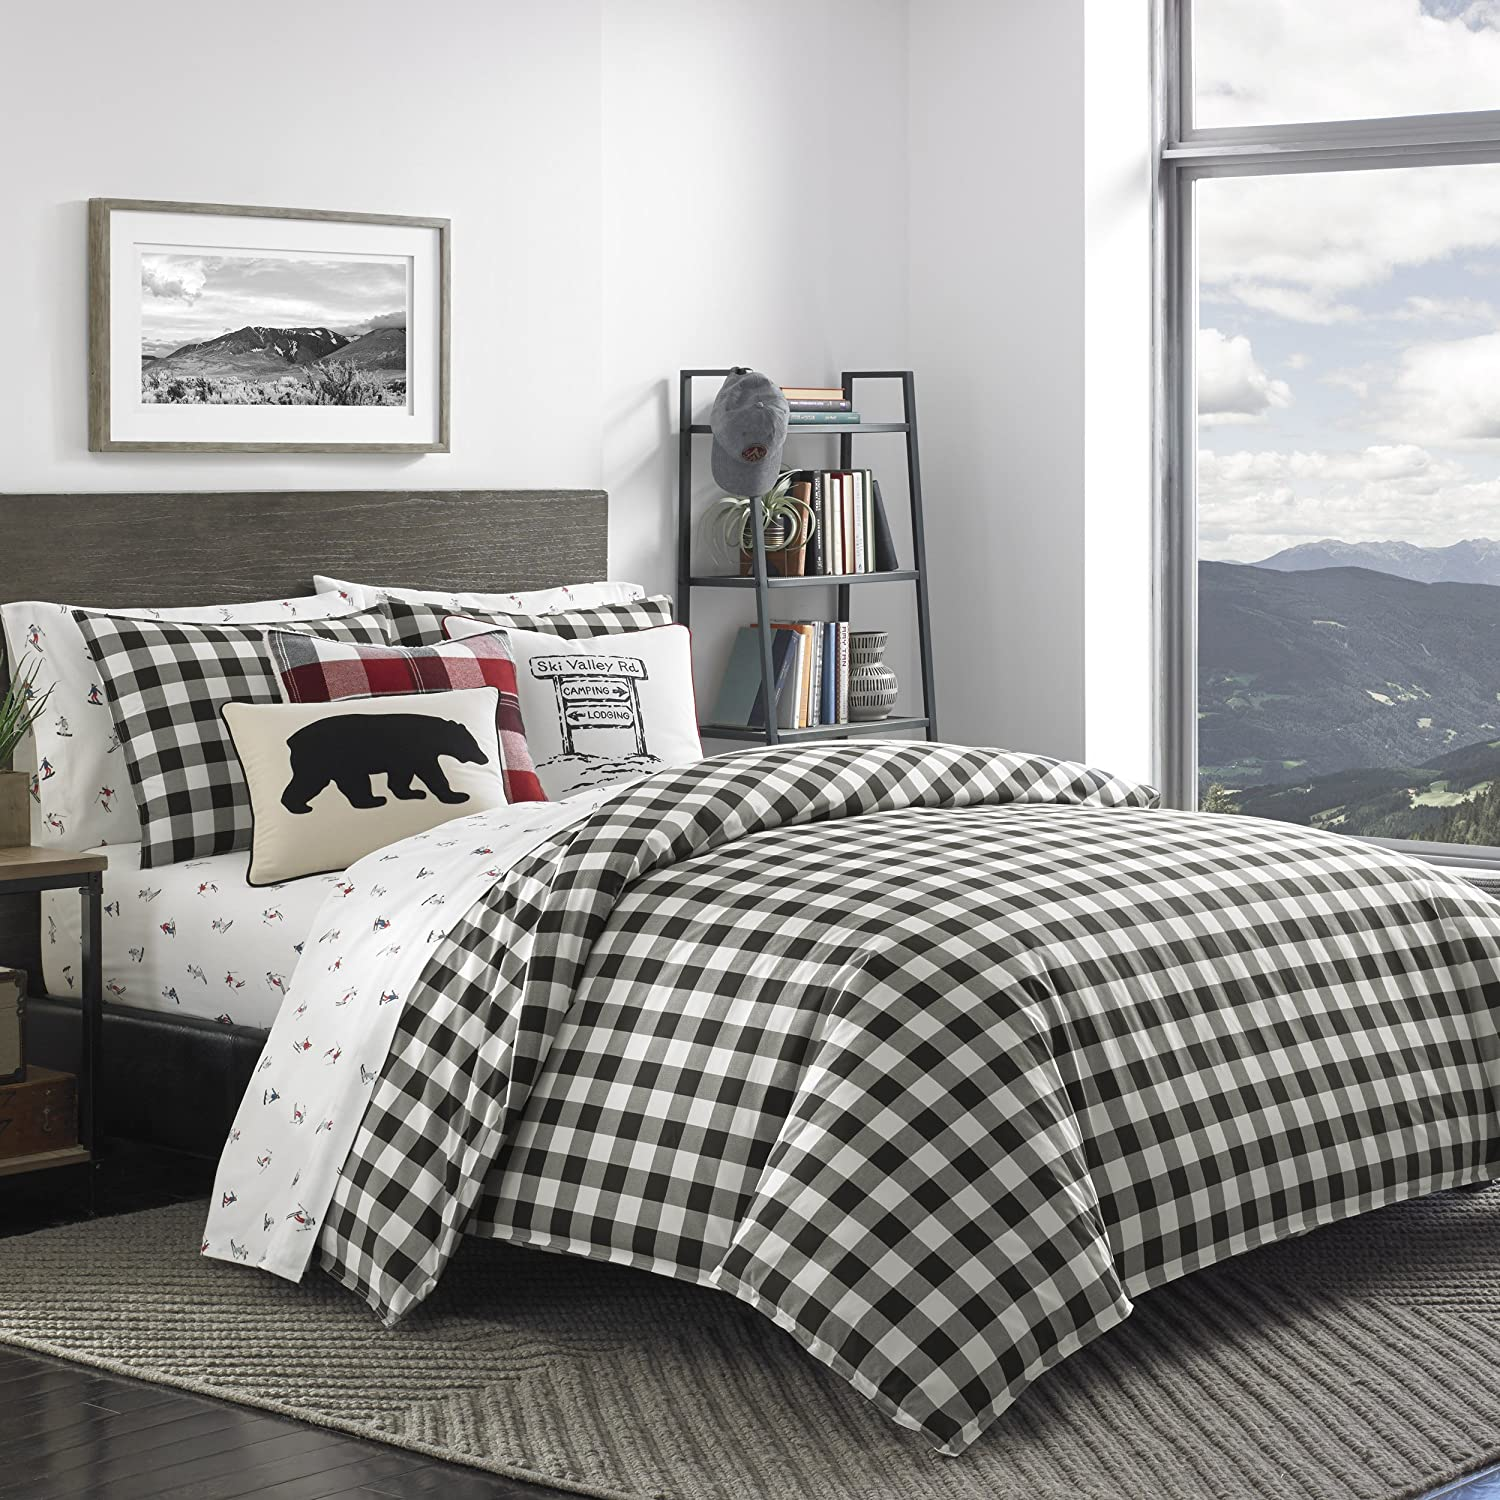 Eddie Bauer Mountain Plaid Comforter Set, King, Black